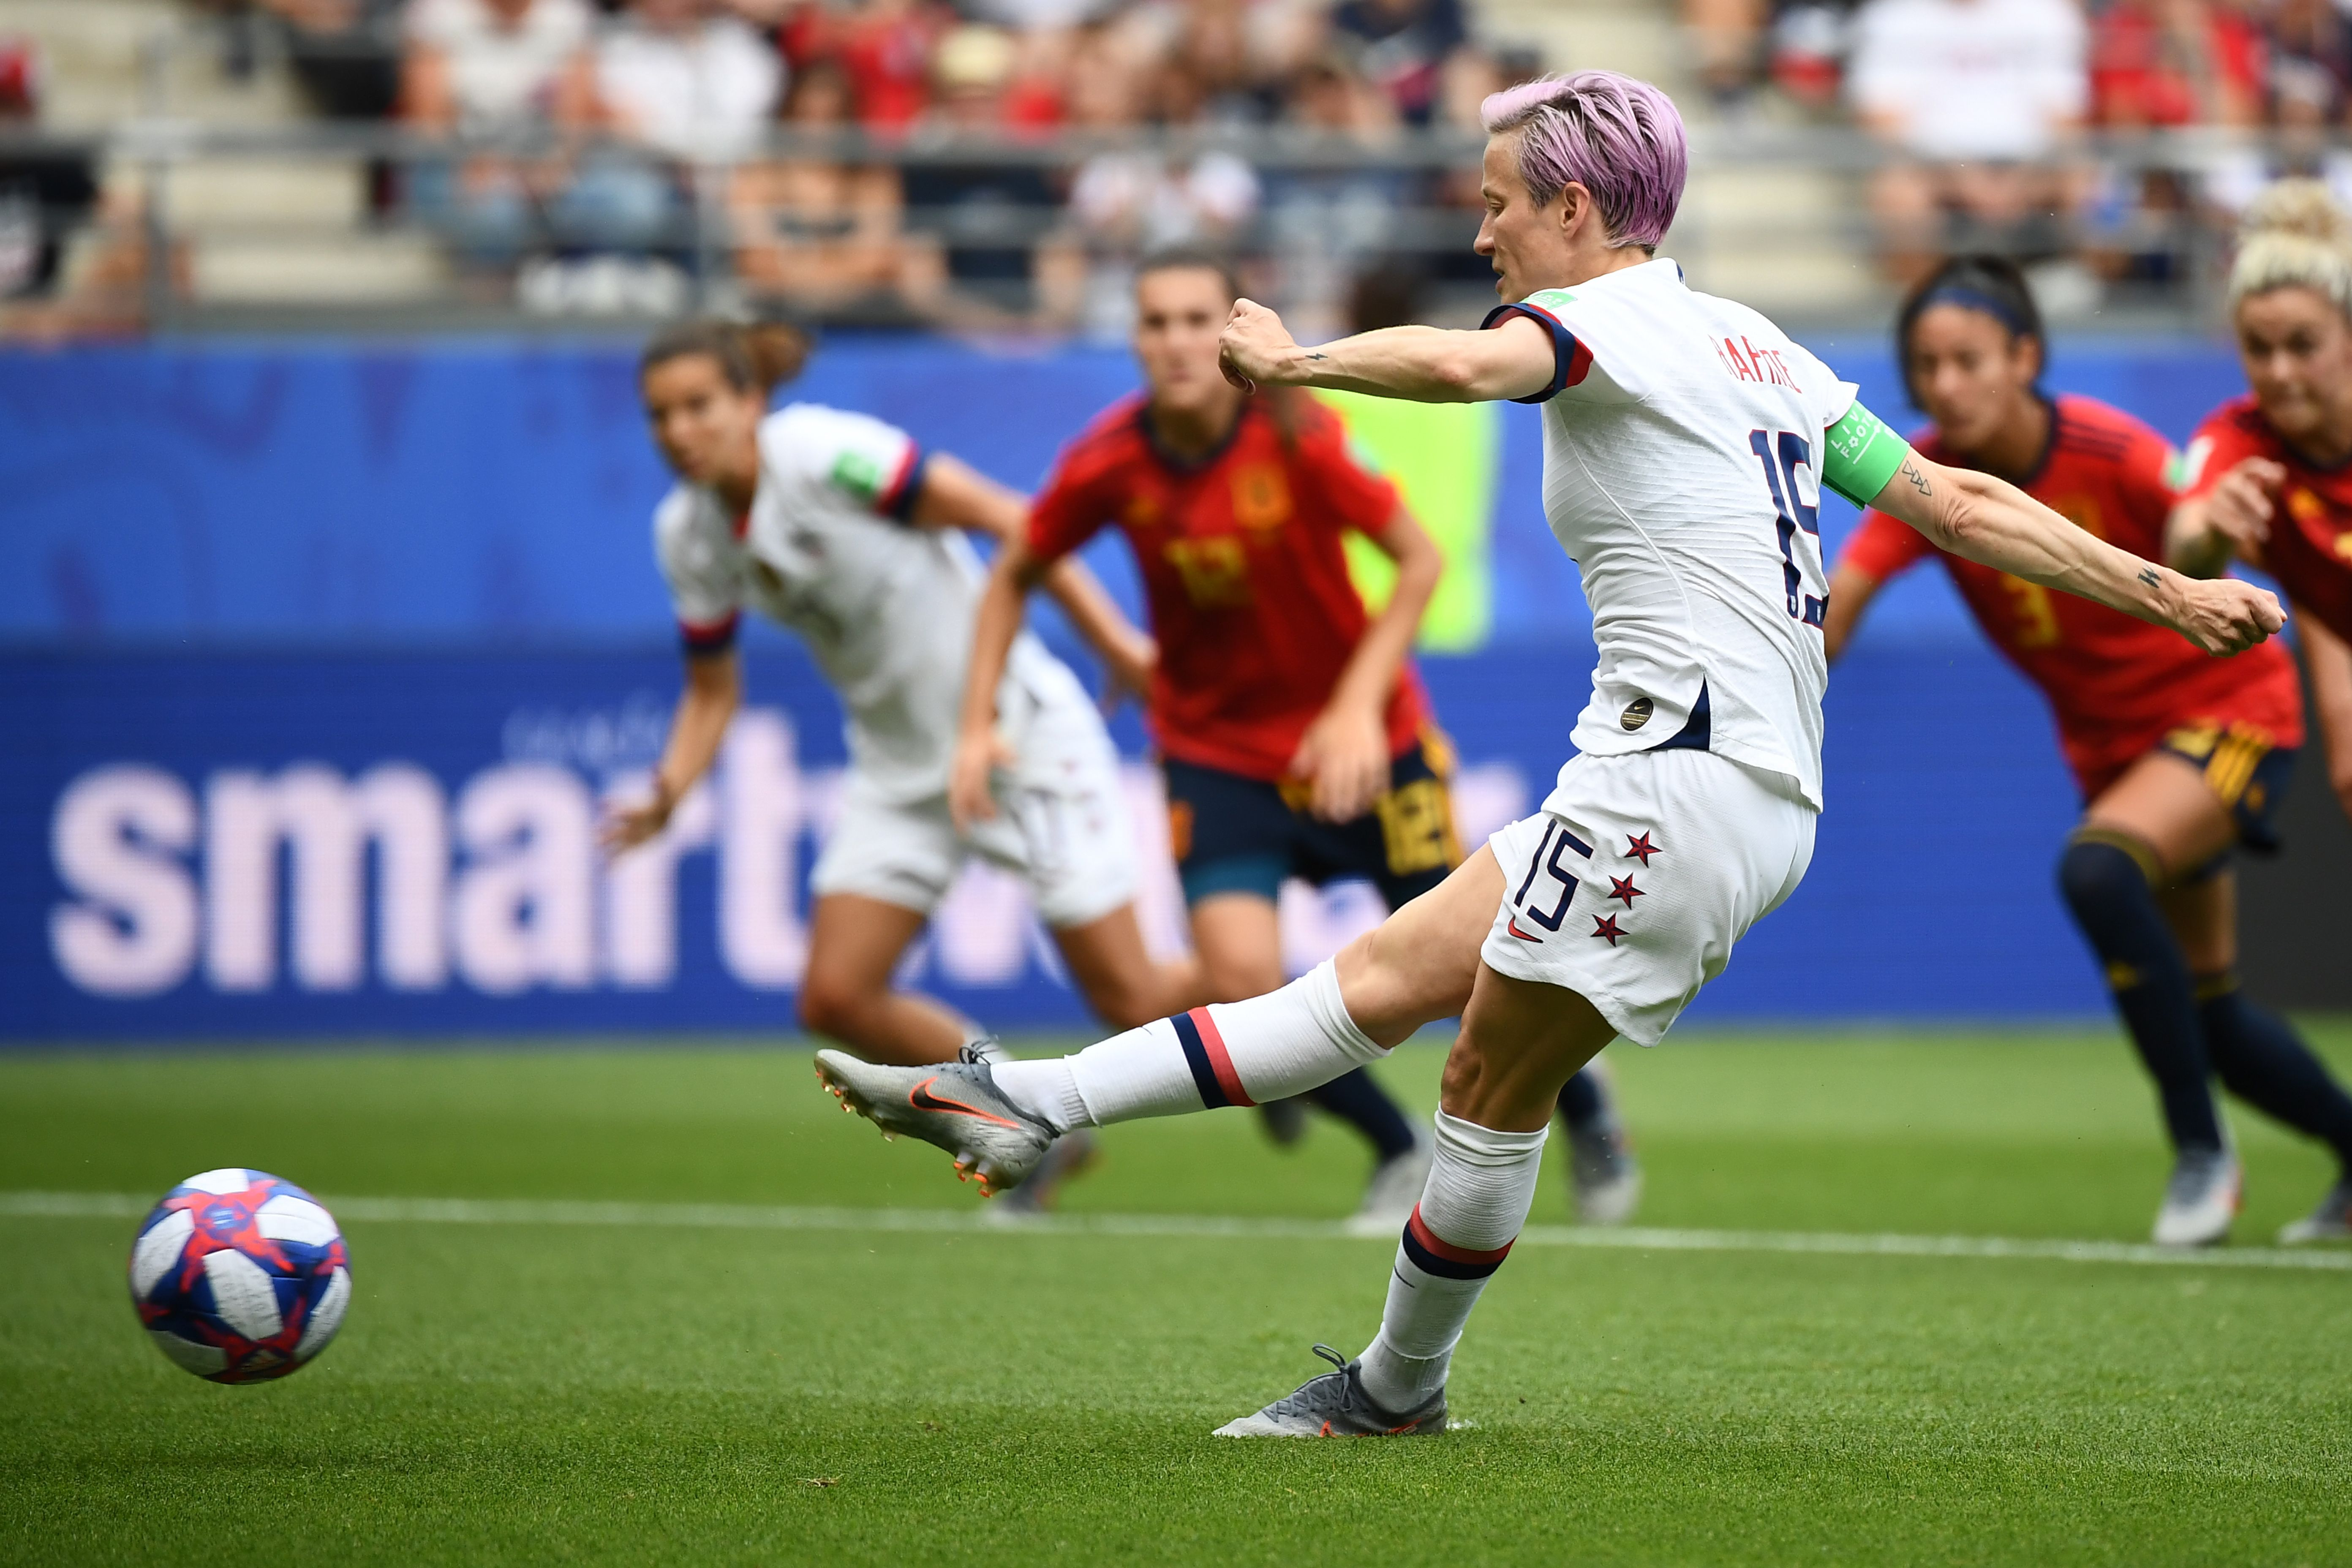 Women's World Cup 2019: 3 takeaways from USA's close win over Spain